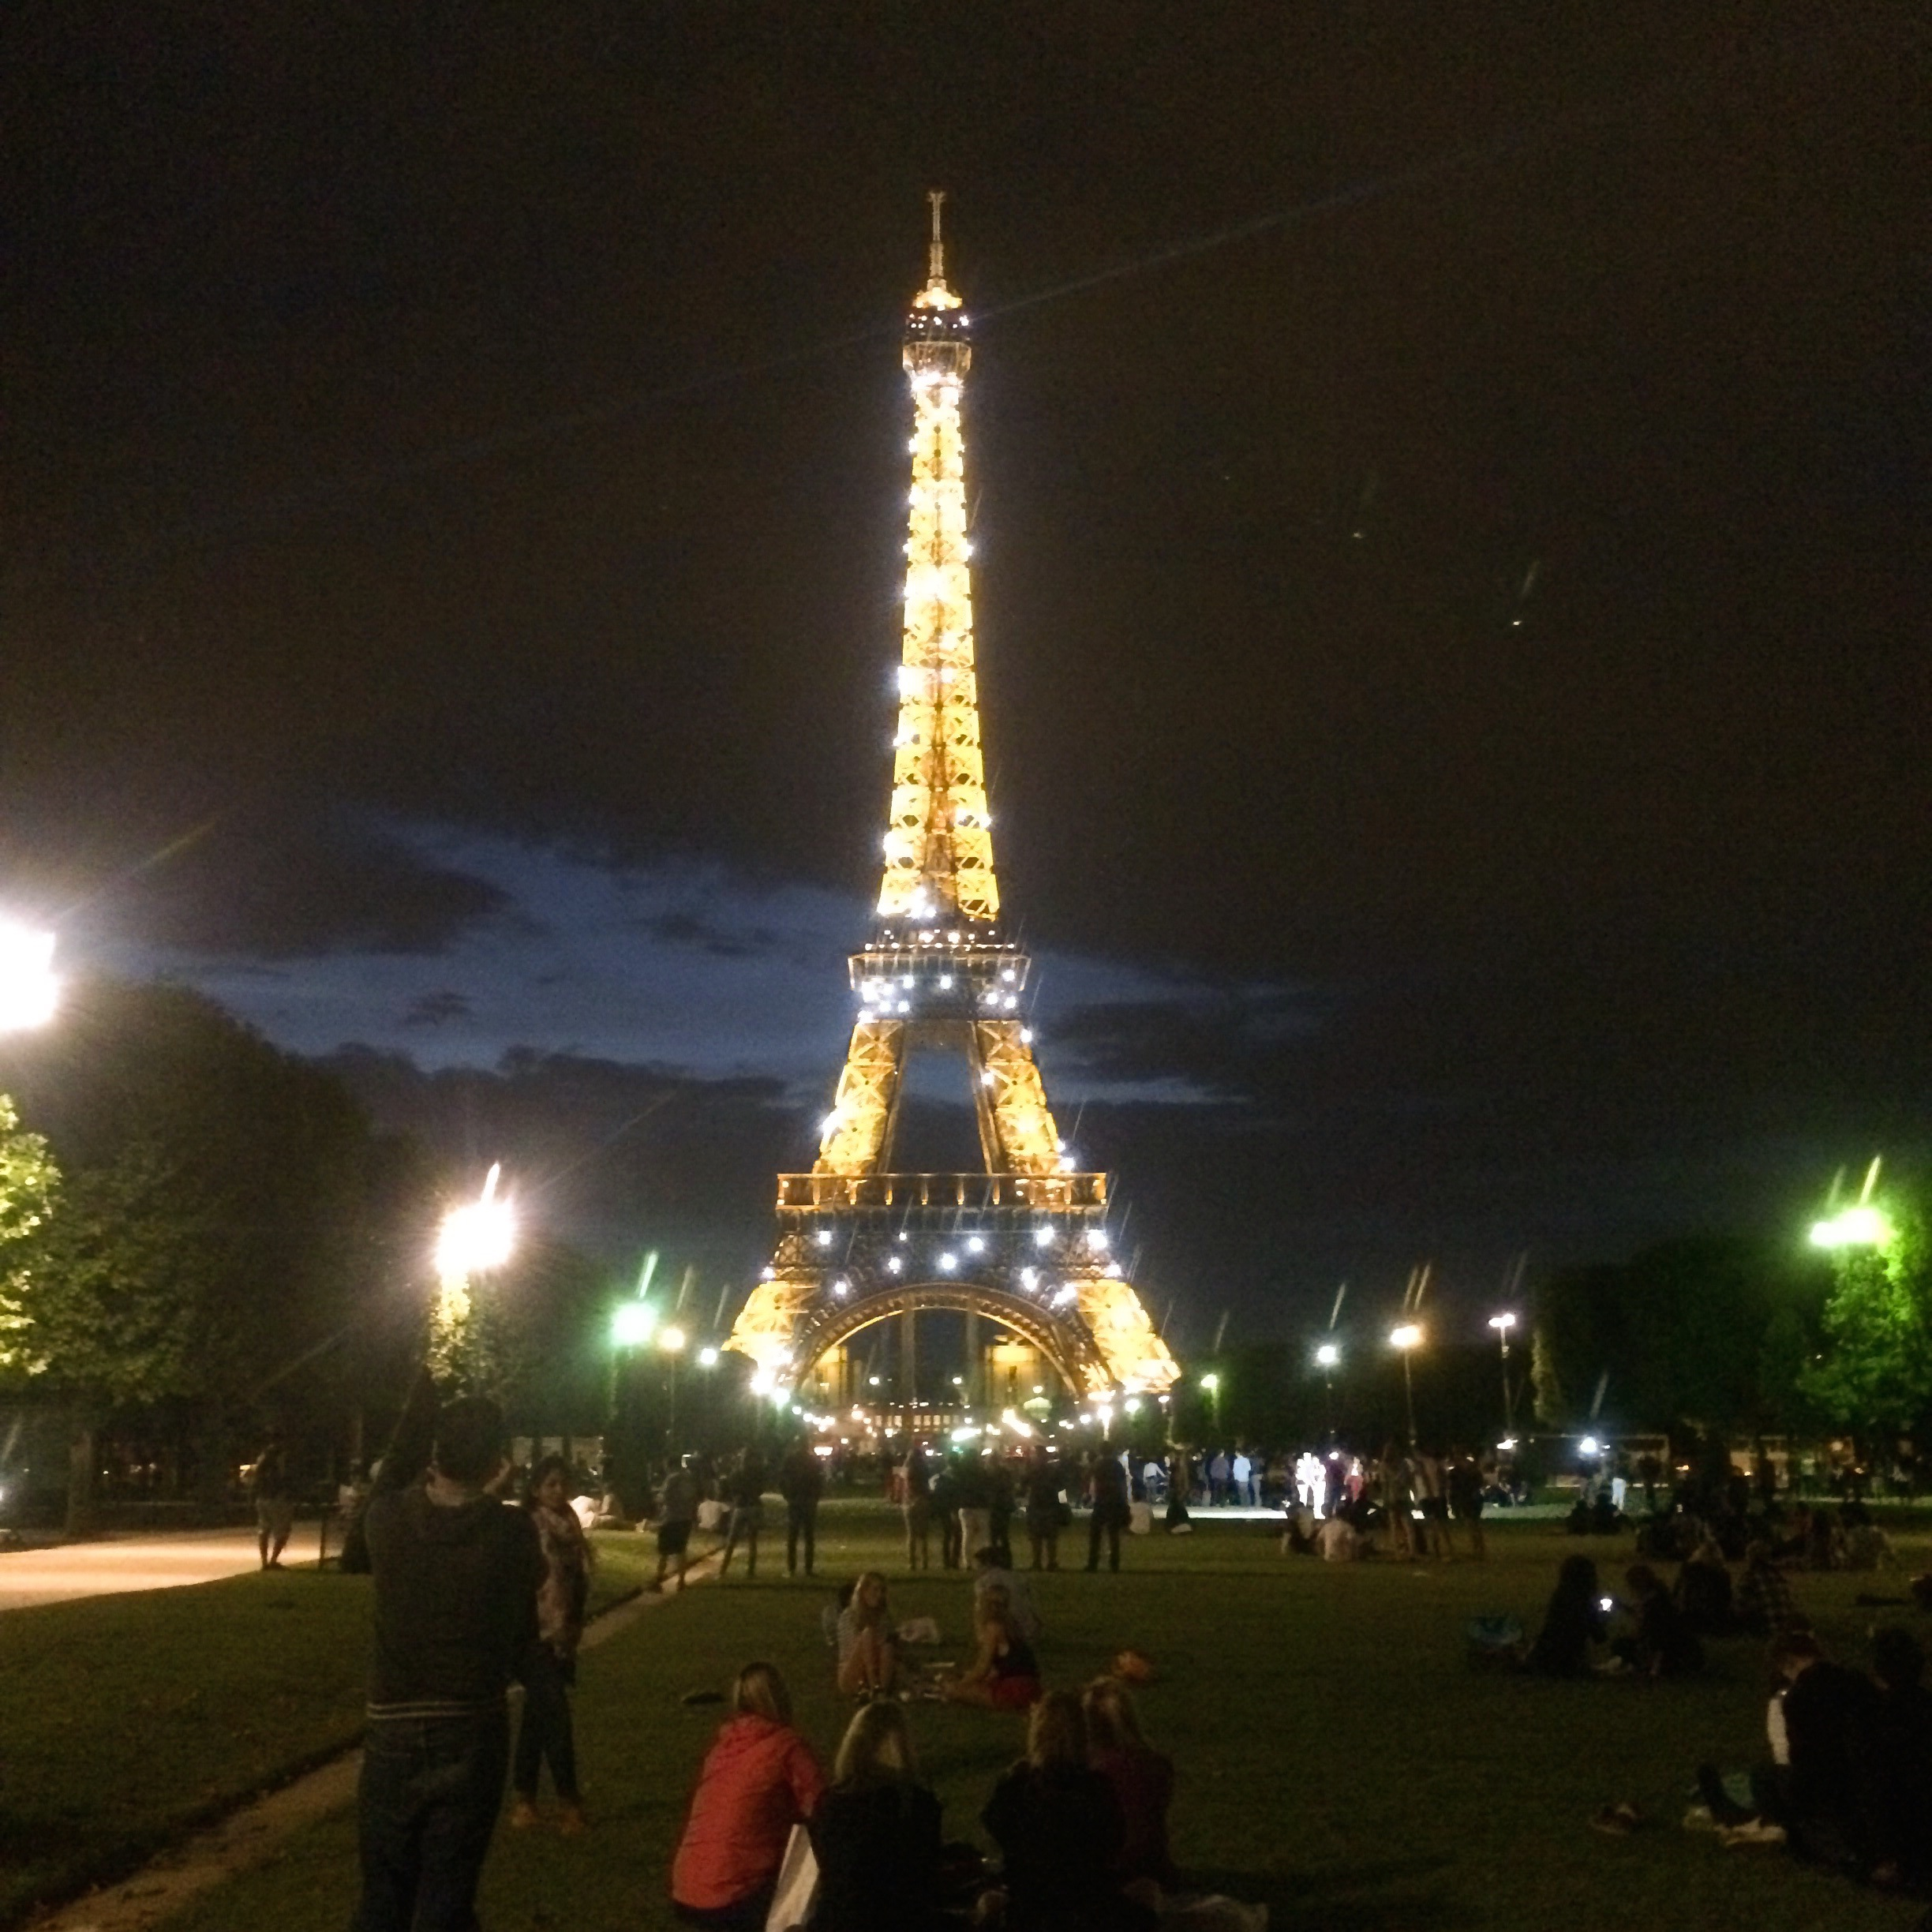 The Eiffel Tower During the Light Show